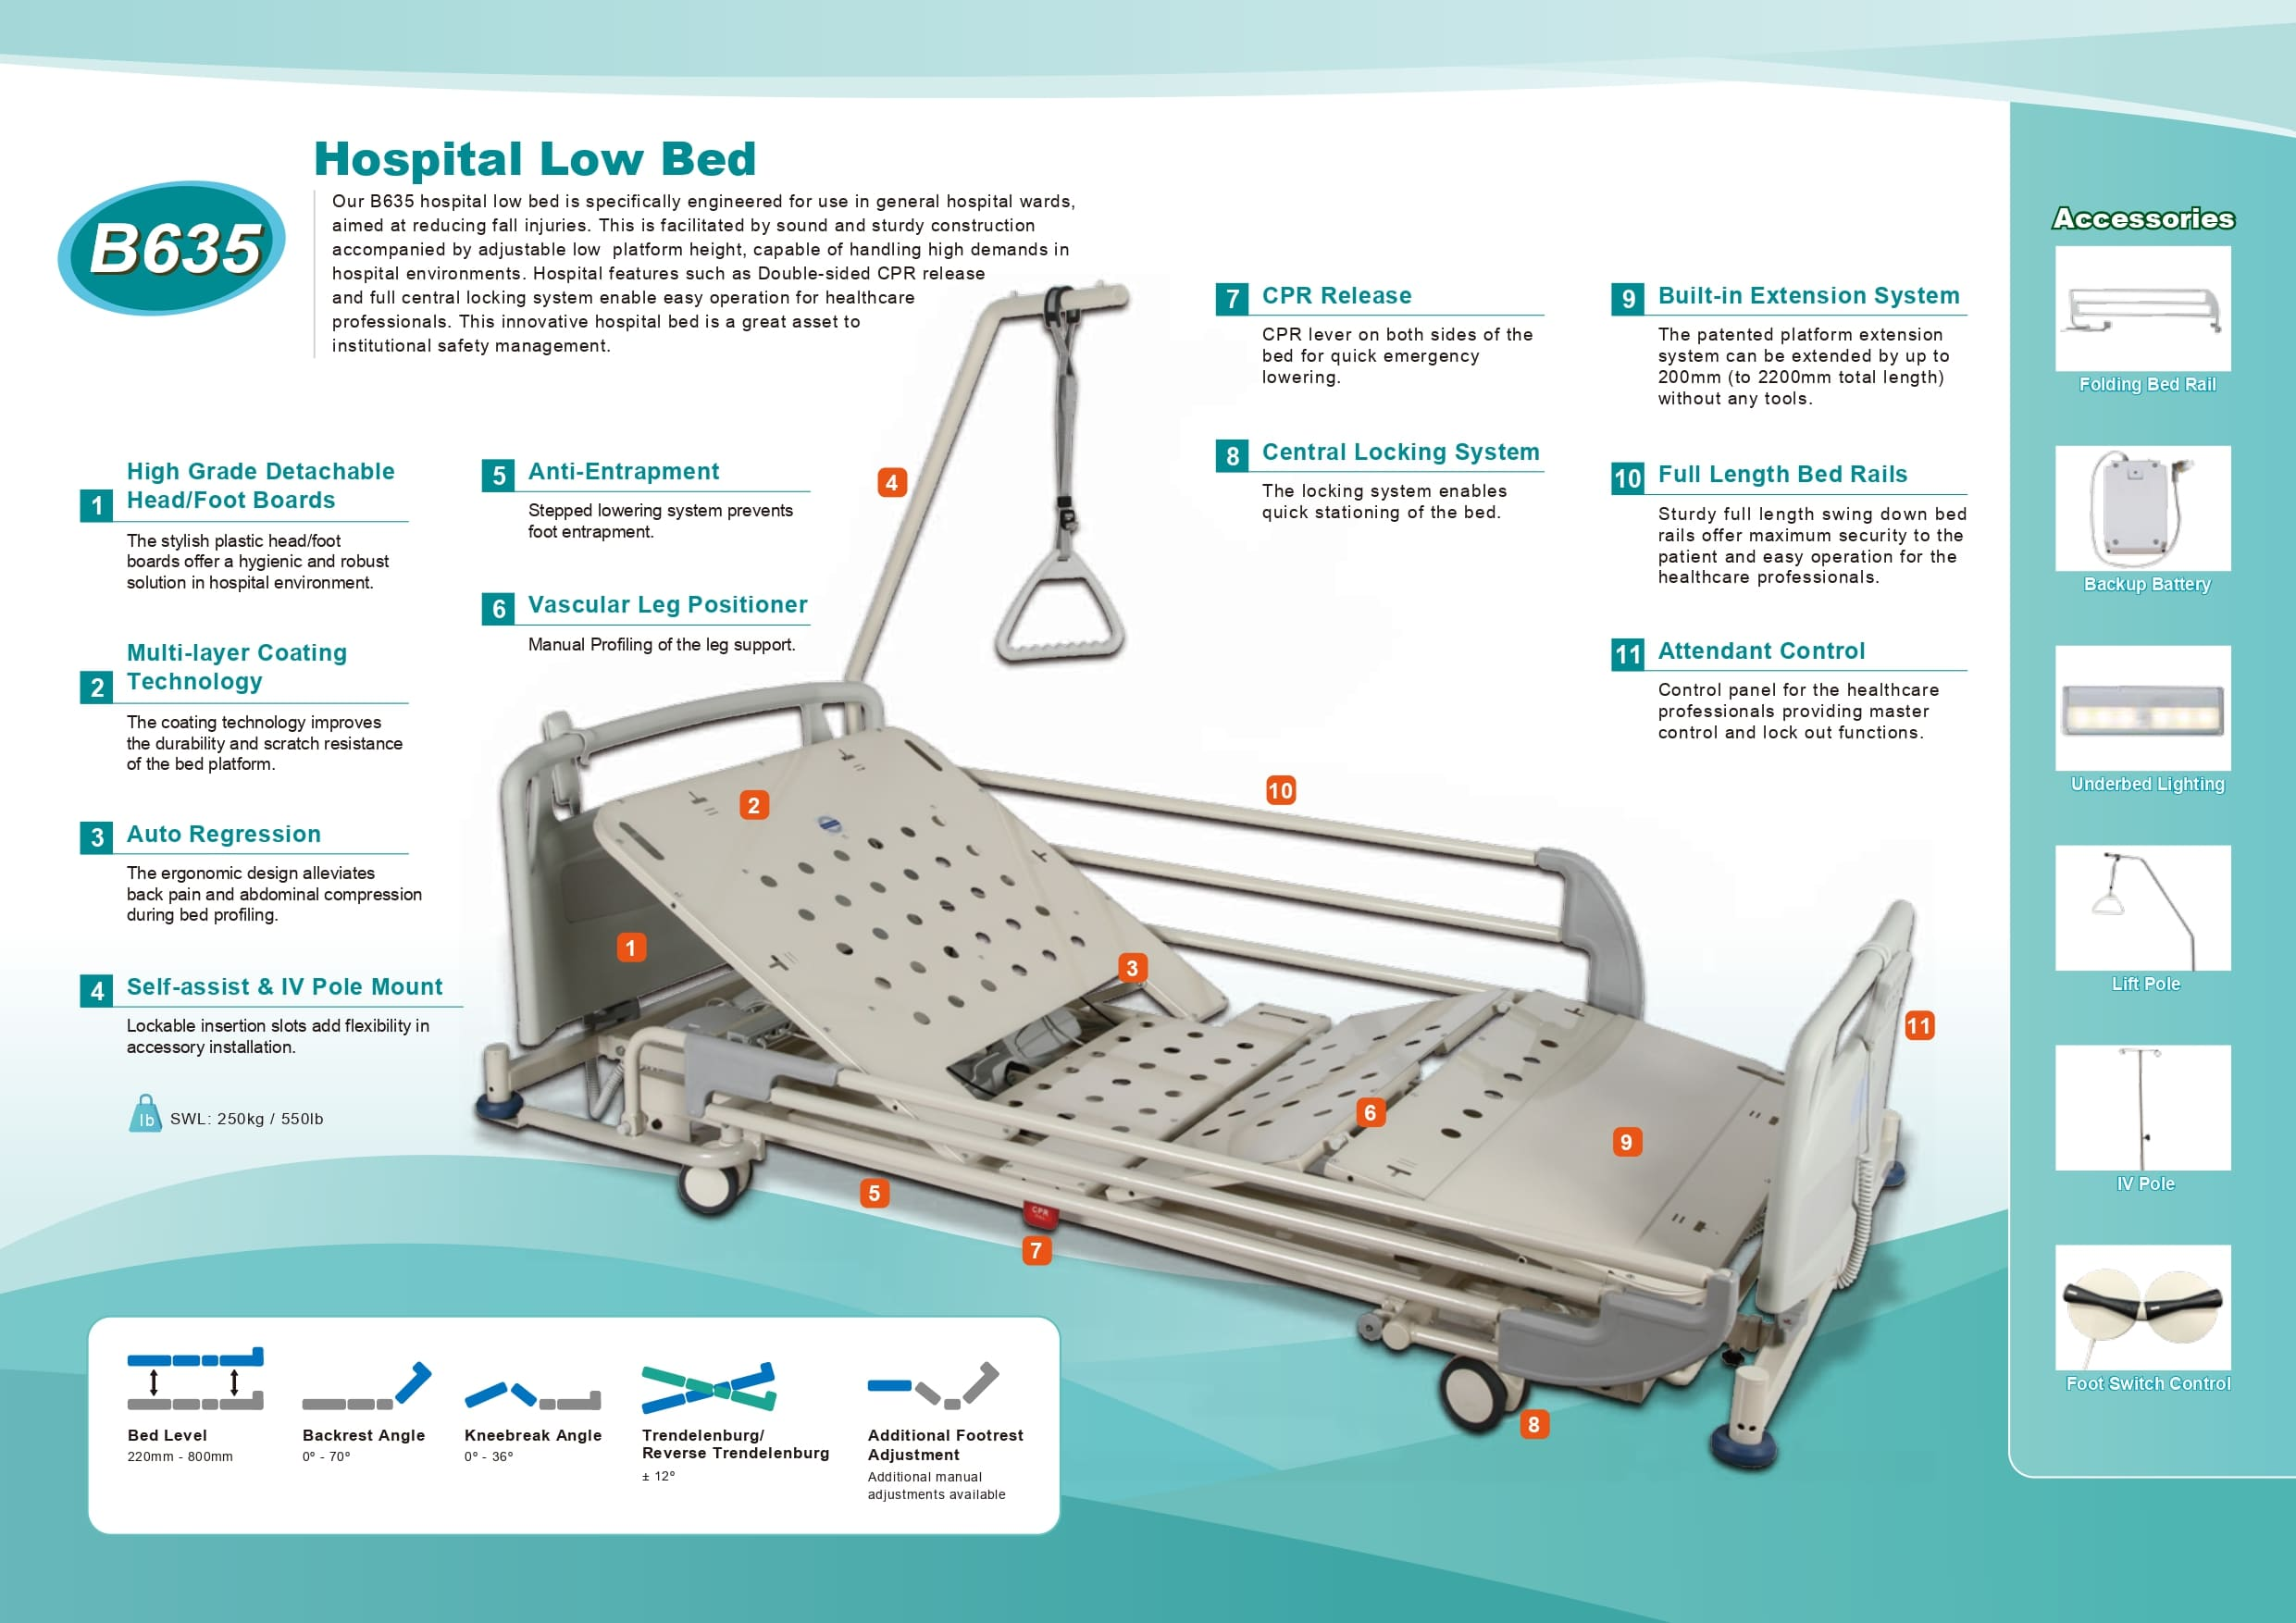 B635 HOSPITAL LOW BED